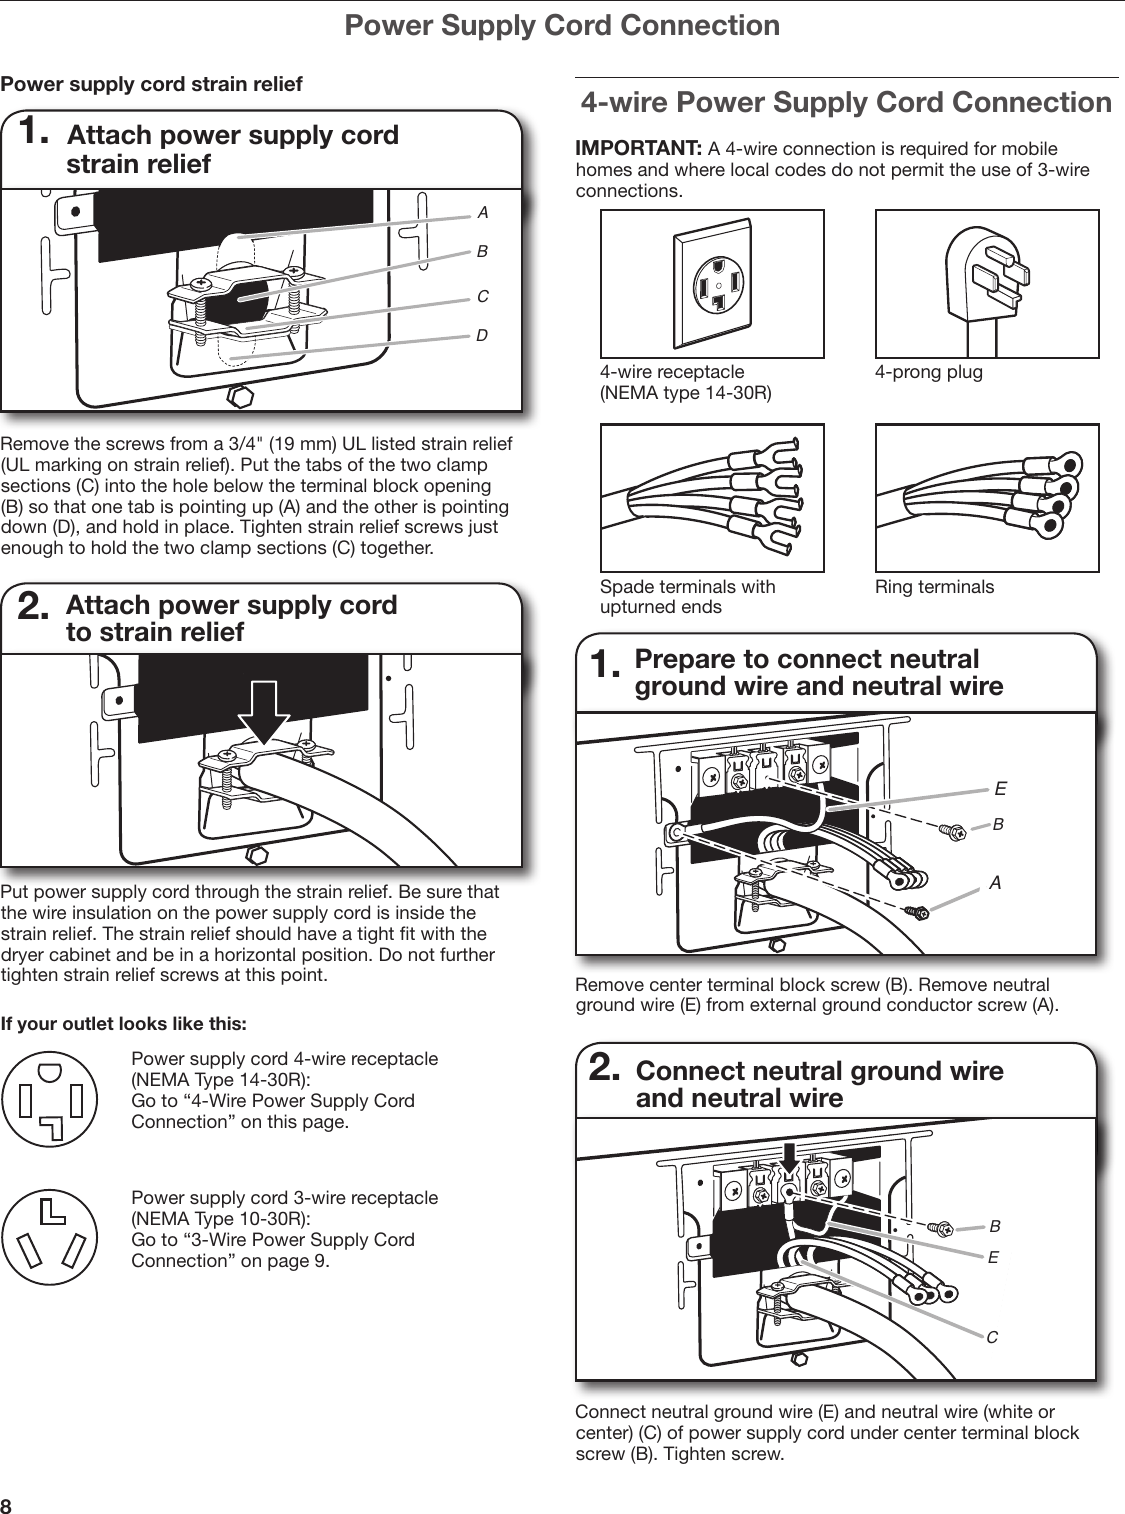 Whirlpool W10115226b Users Manual Cord 3 Wire Diagram Page 8 Of 20